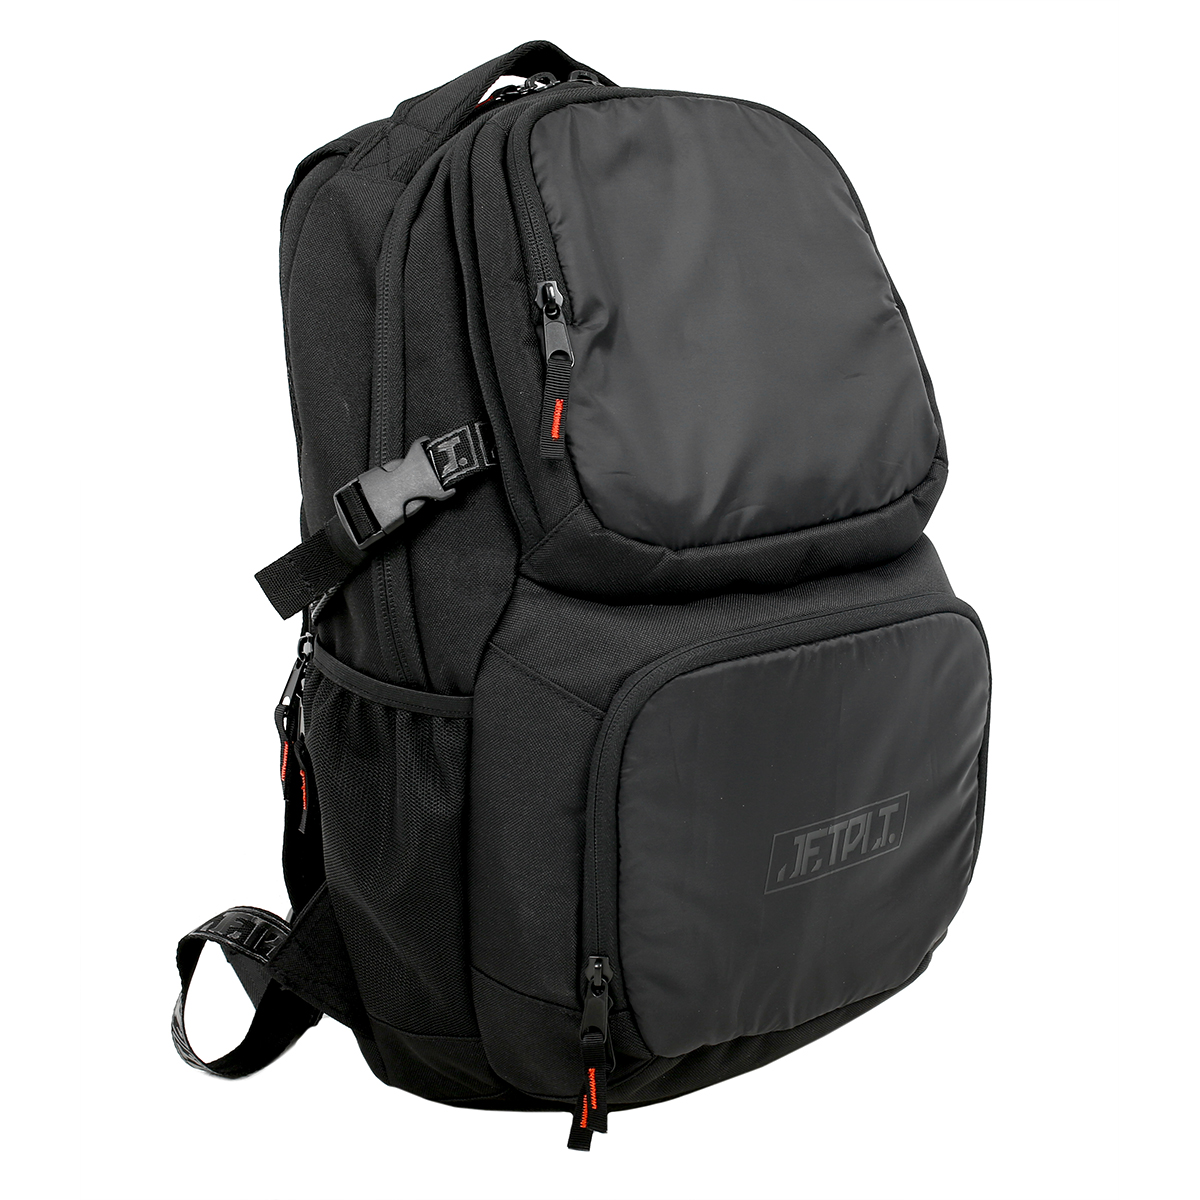 【JETPILOT/2020モデル】BLACKOUT BACKPACK ジェットパイロット バックパック バッグ ACS19307 【送料無料】